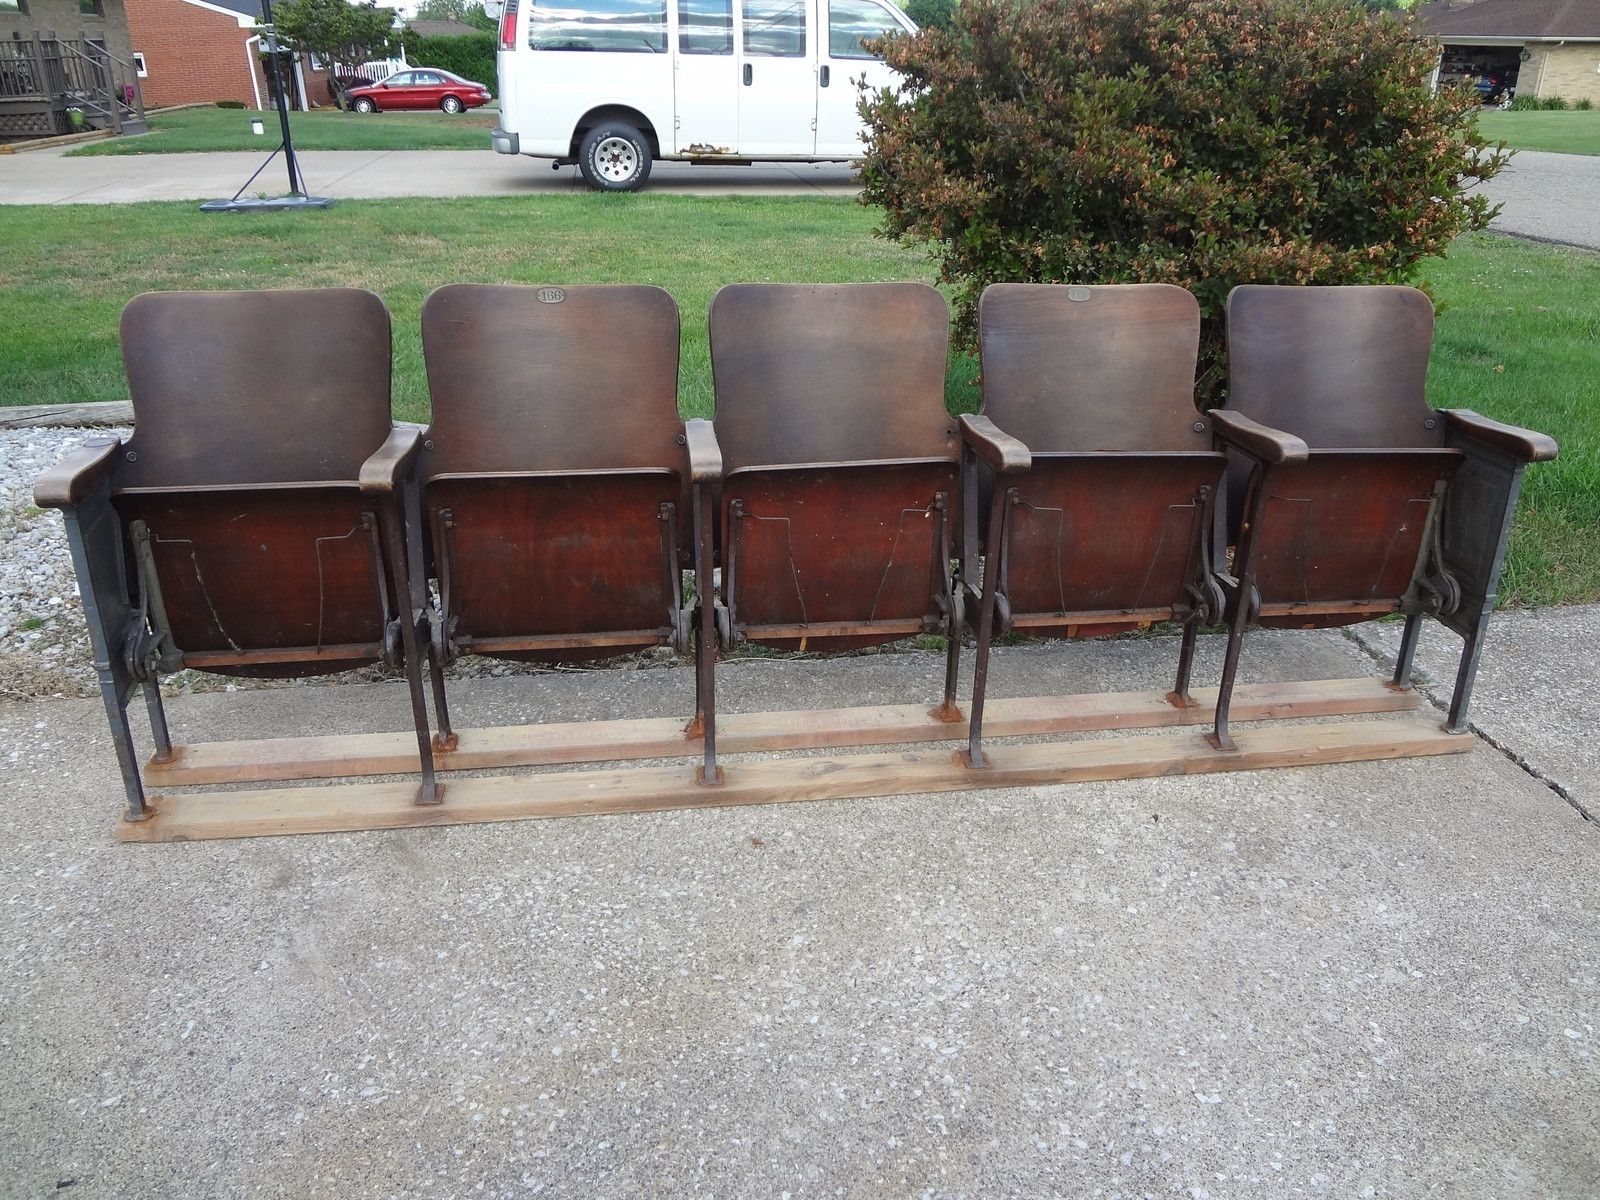 Vintage Movie Theatre Wood Seat Cast Iron Chair Auditorium Stadium Pertaining To Best And Newest Bale 7 Piece Dining Sets With Dom Side Chairs (View 8 of 20)